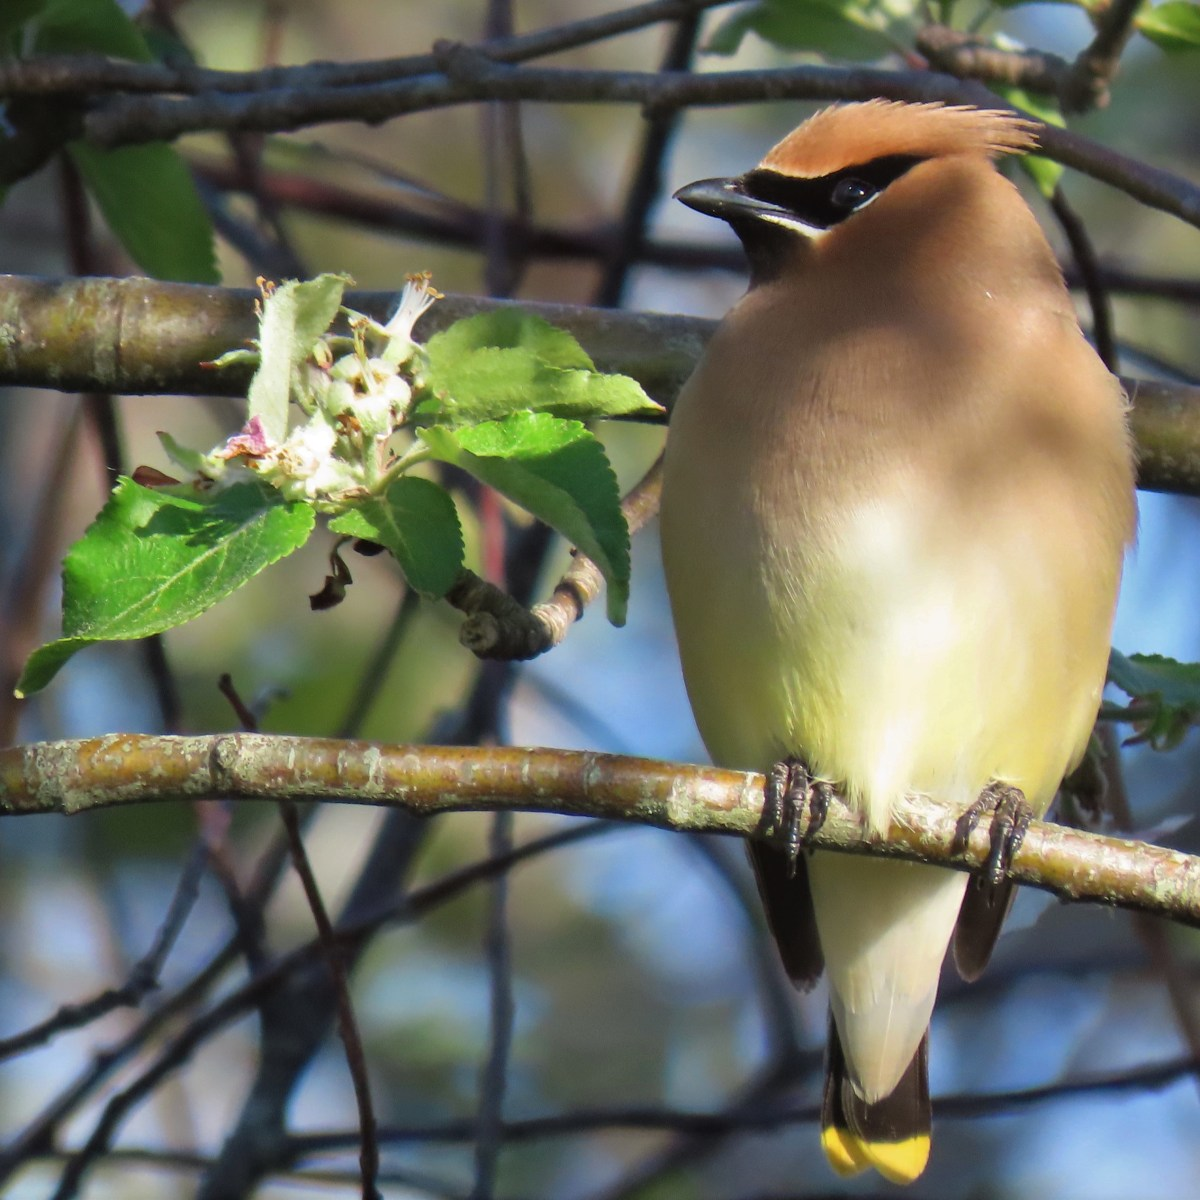 A Cedar Waxwing perched on a branch